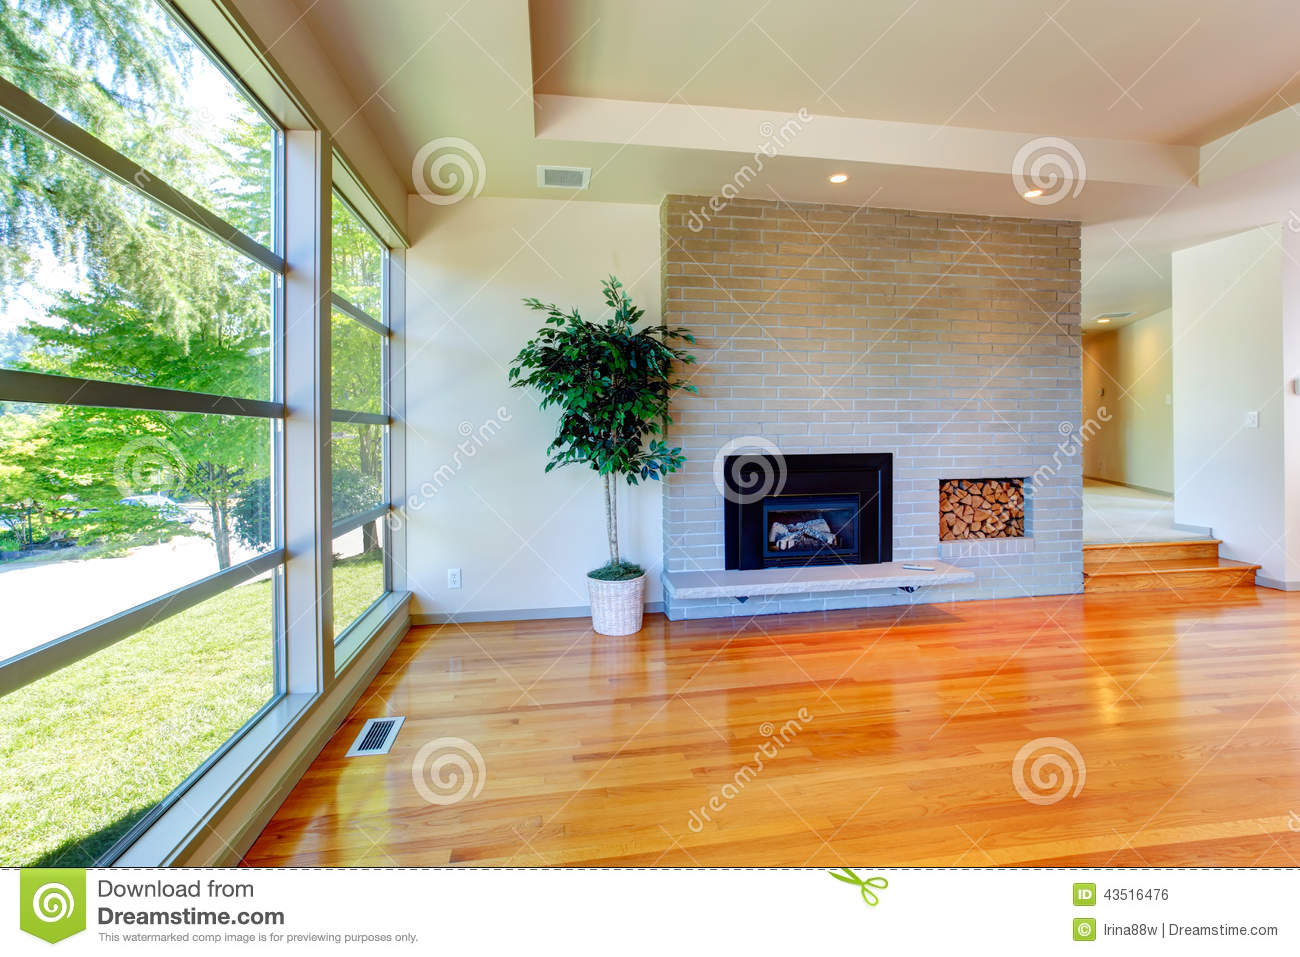 Empty House Interior Glass Wall Living Room With Brick An Royalty Free Stock Image